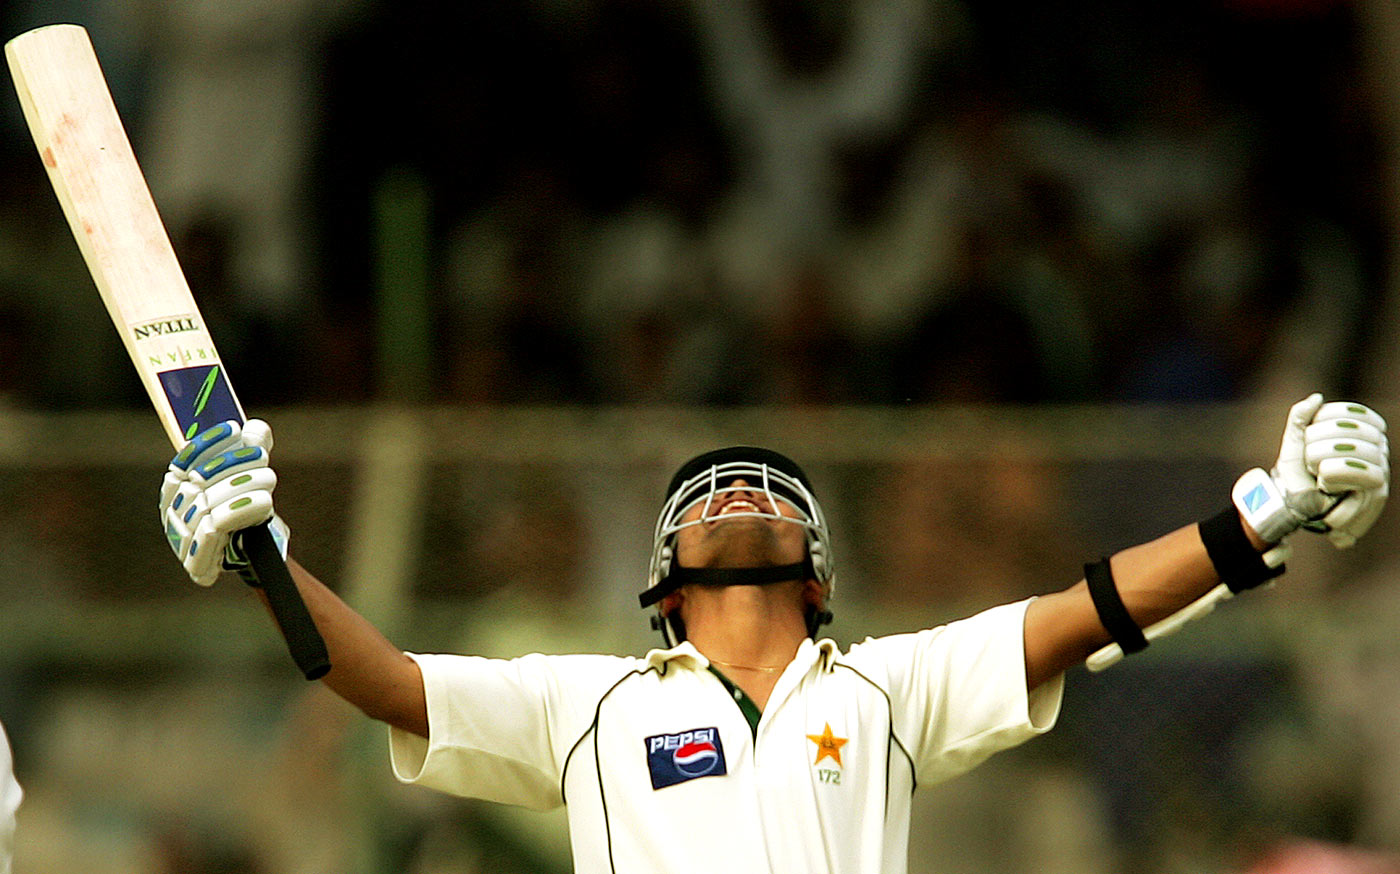 In 2006, Akmal was a remarkable cricketer capable of remarkable feats